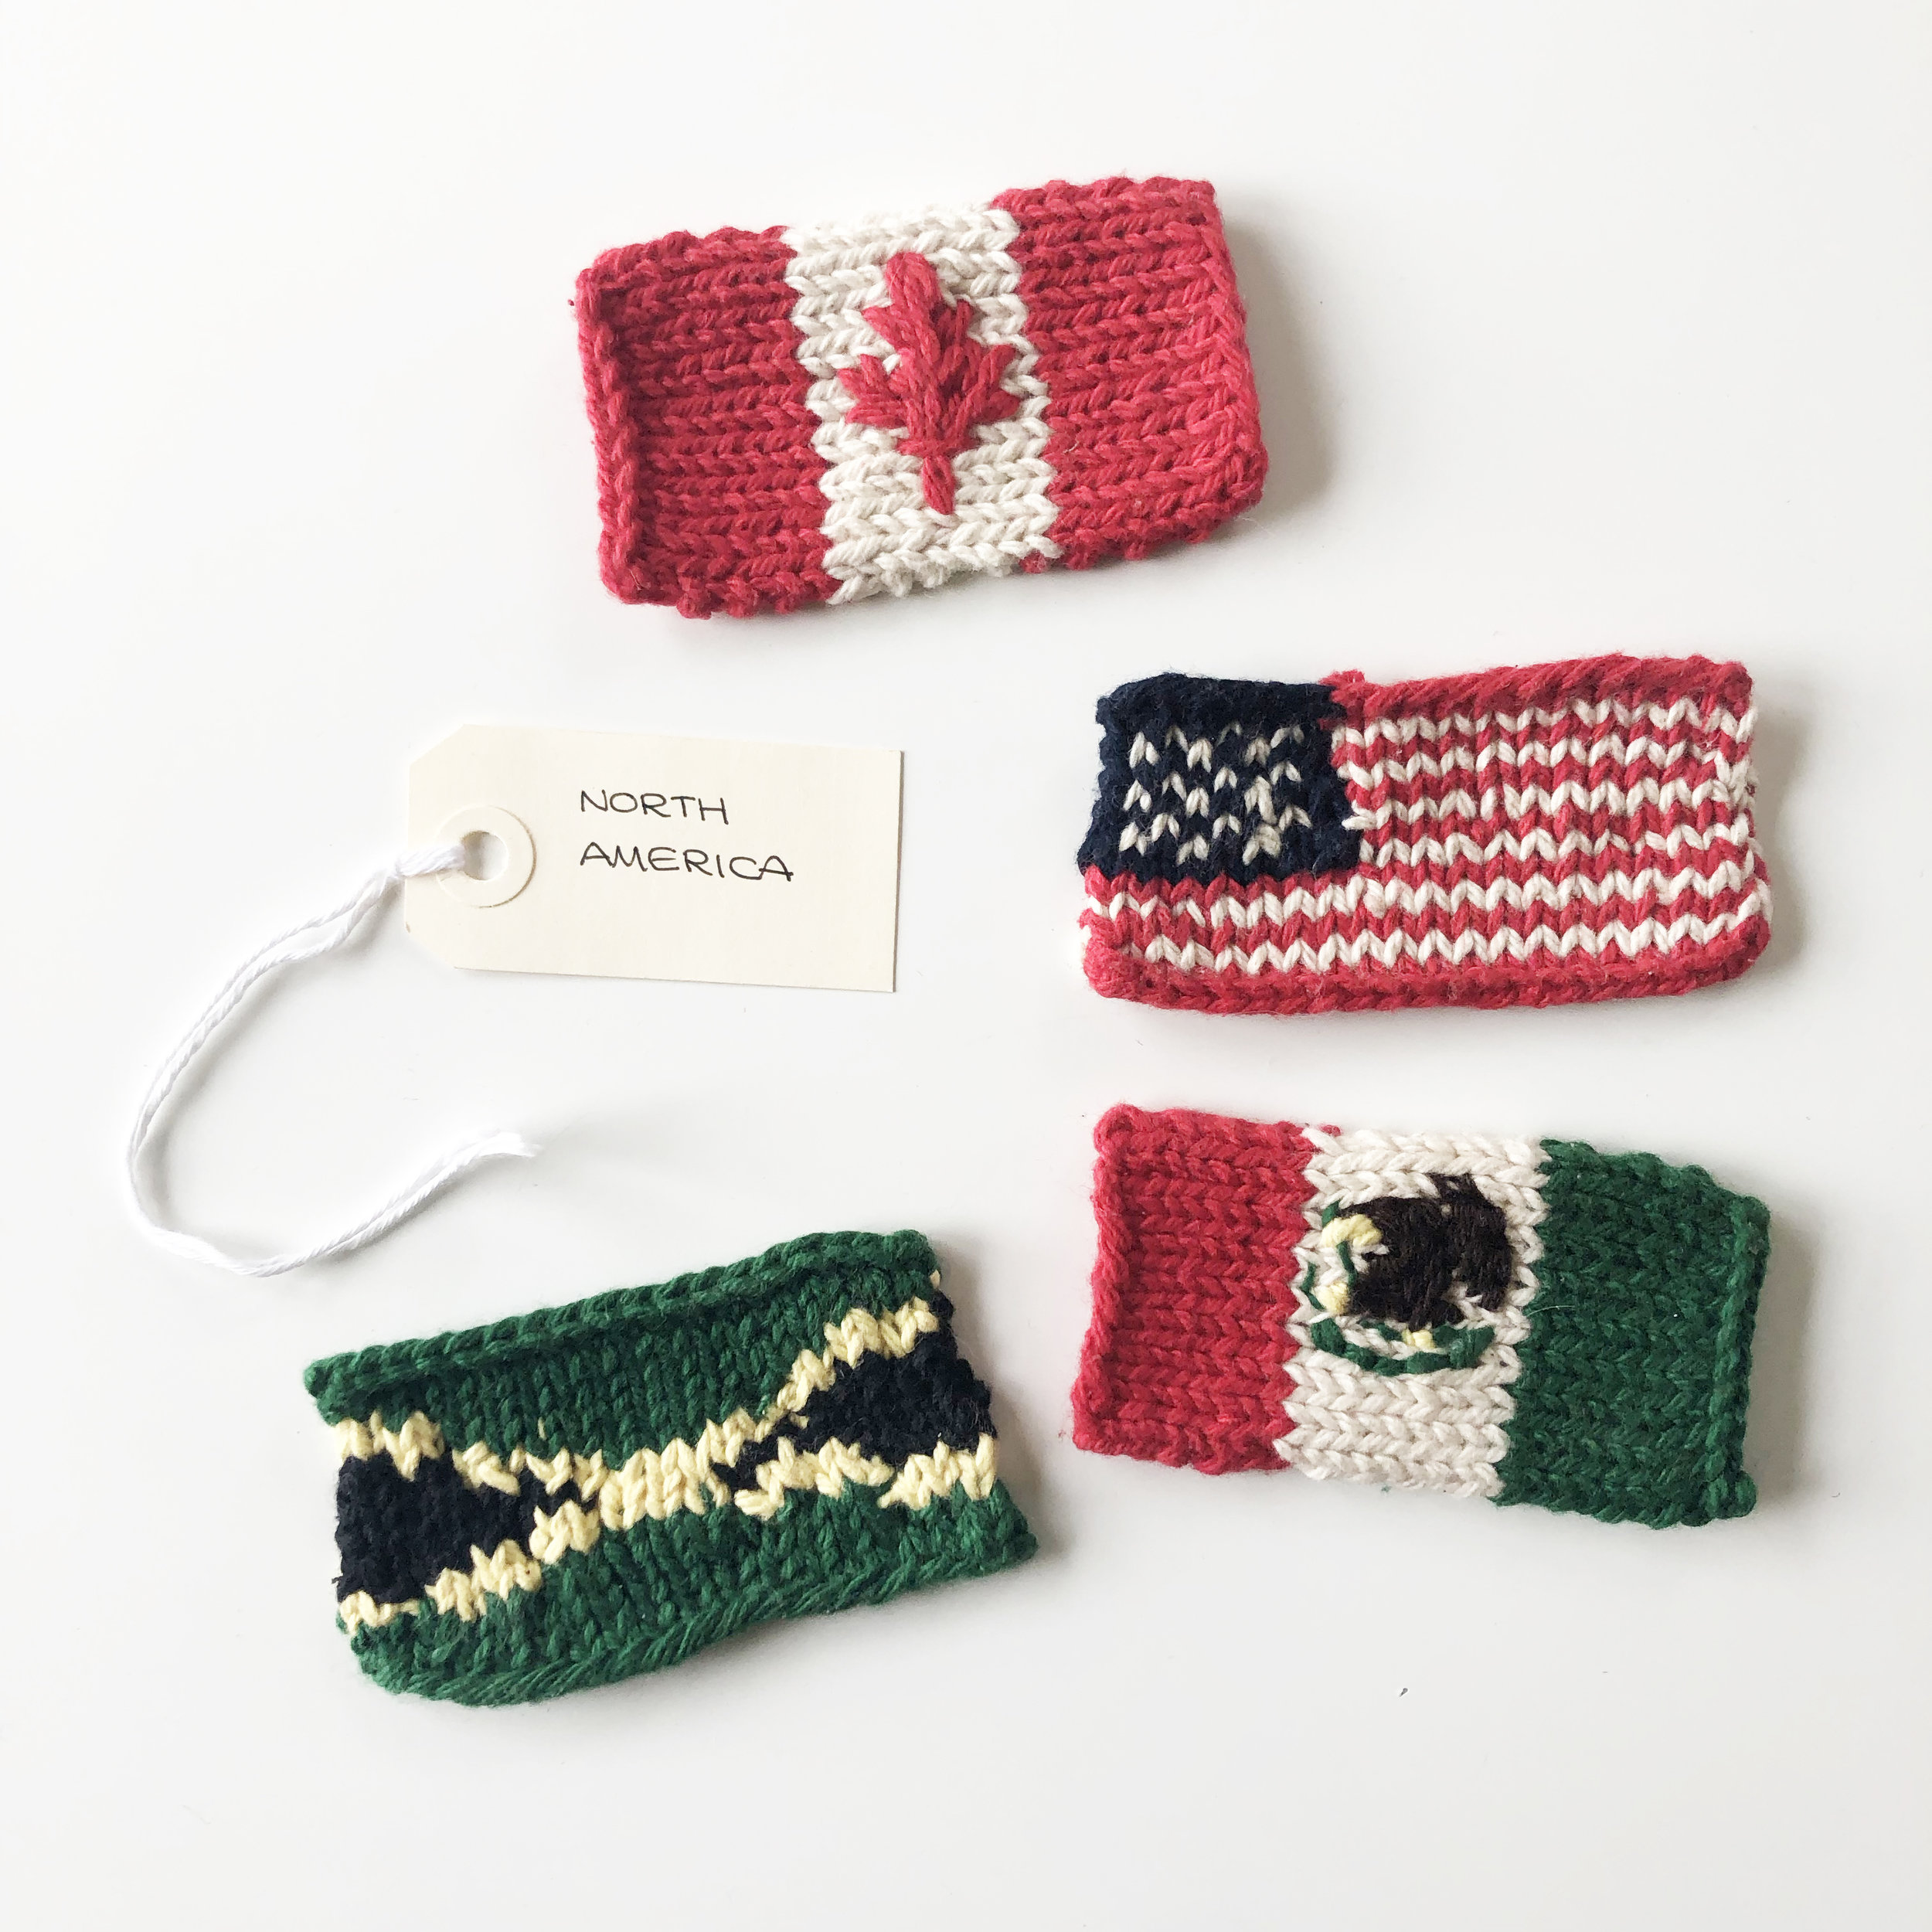 elisemade-knit-world-flags-north-america.jpg